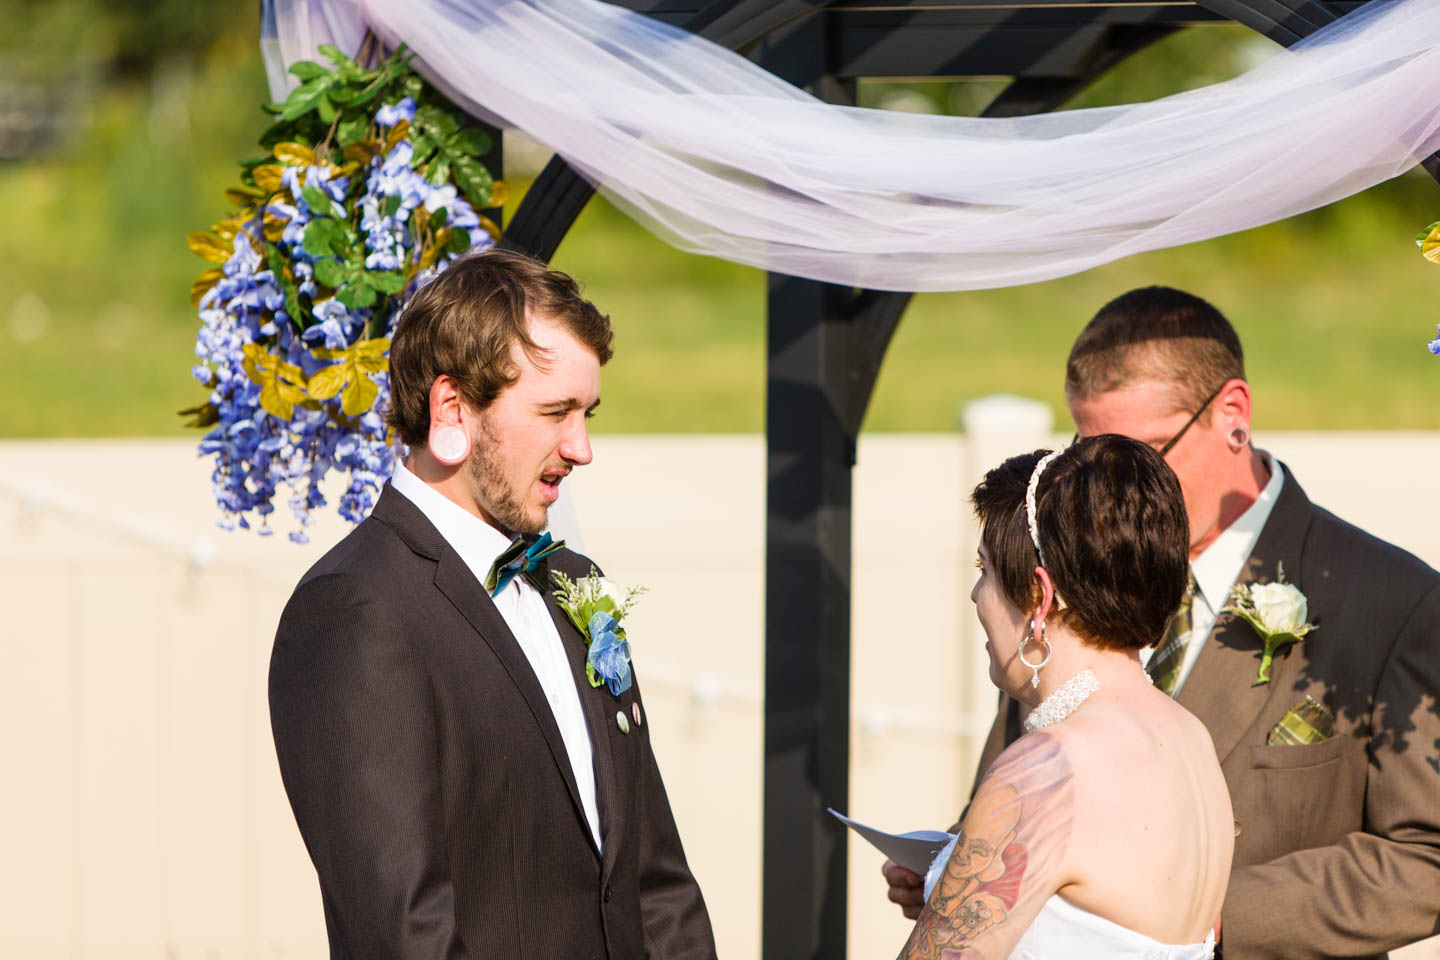 Groom shares wedding vow